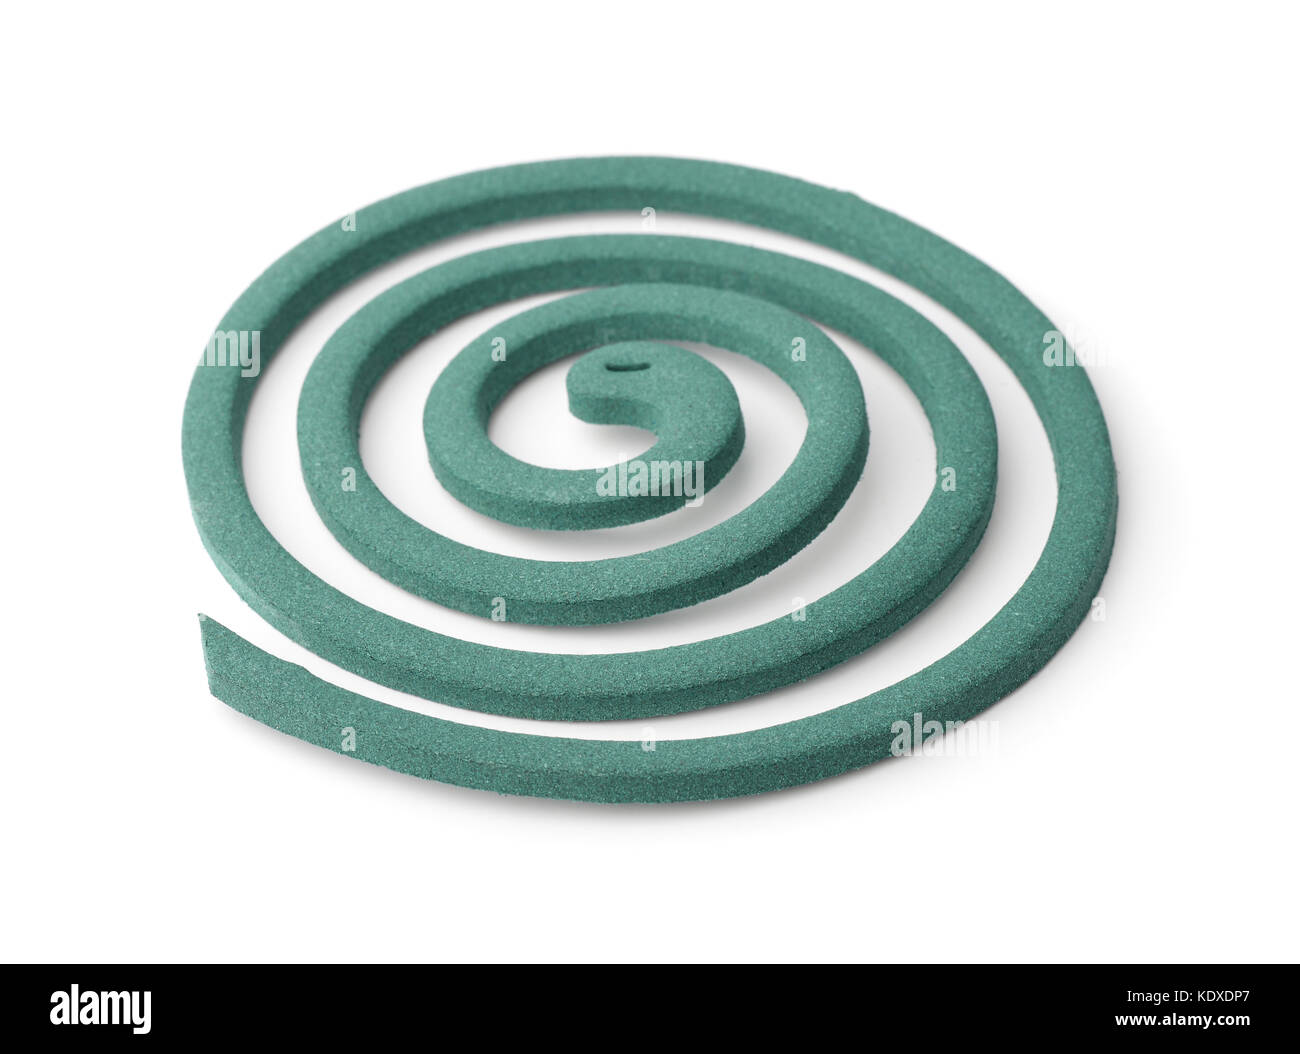 Mosquito repellent coil isolated on white - Stock Image